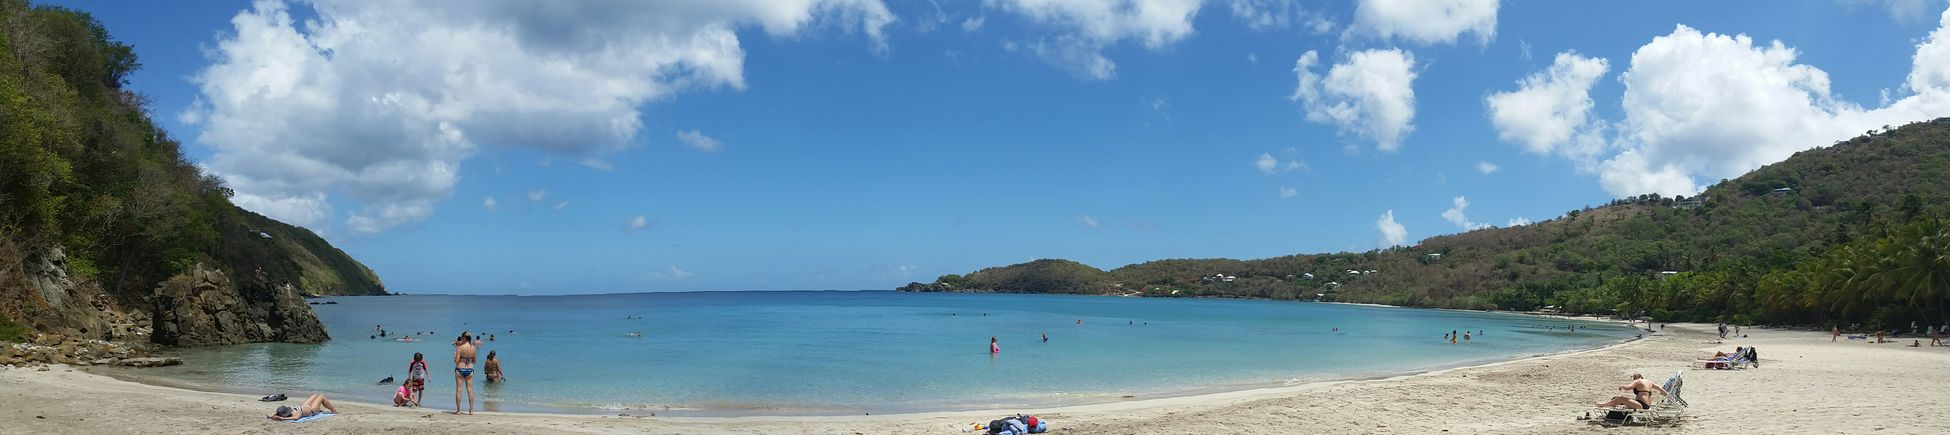 Megansbaybeach Stthomas Beach Panorama